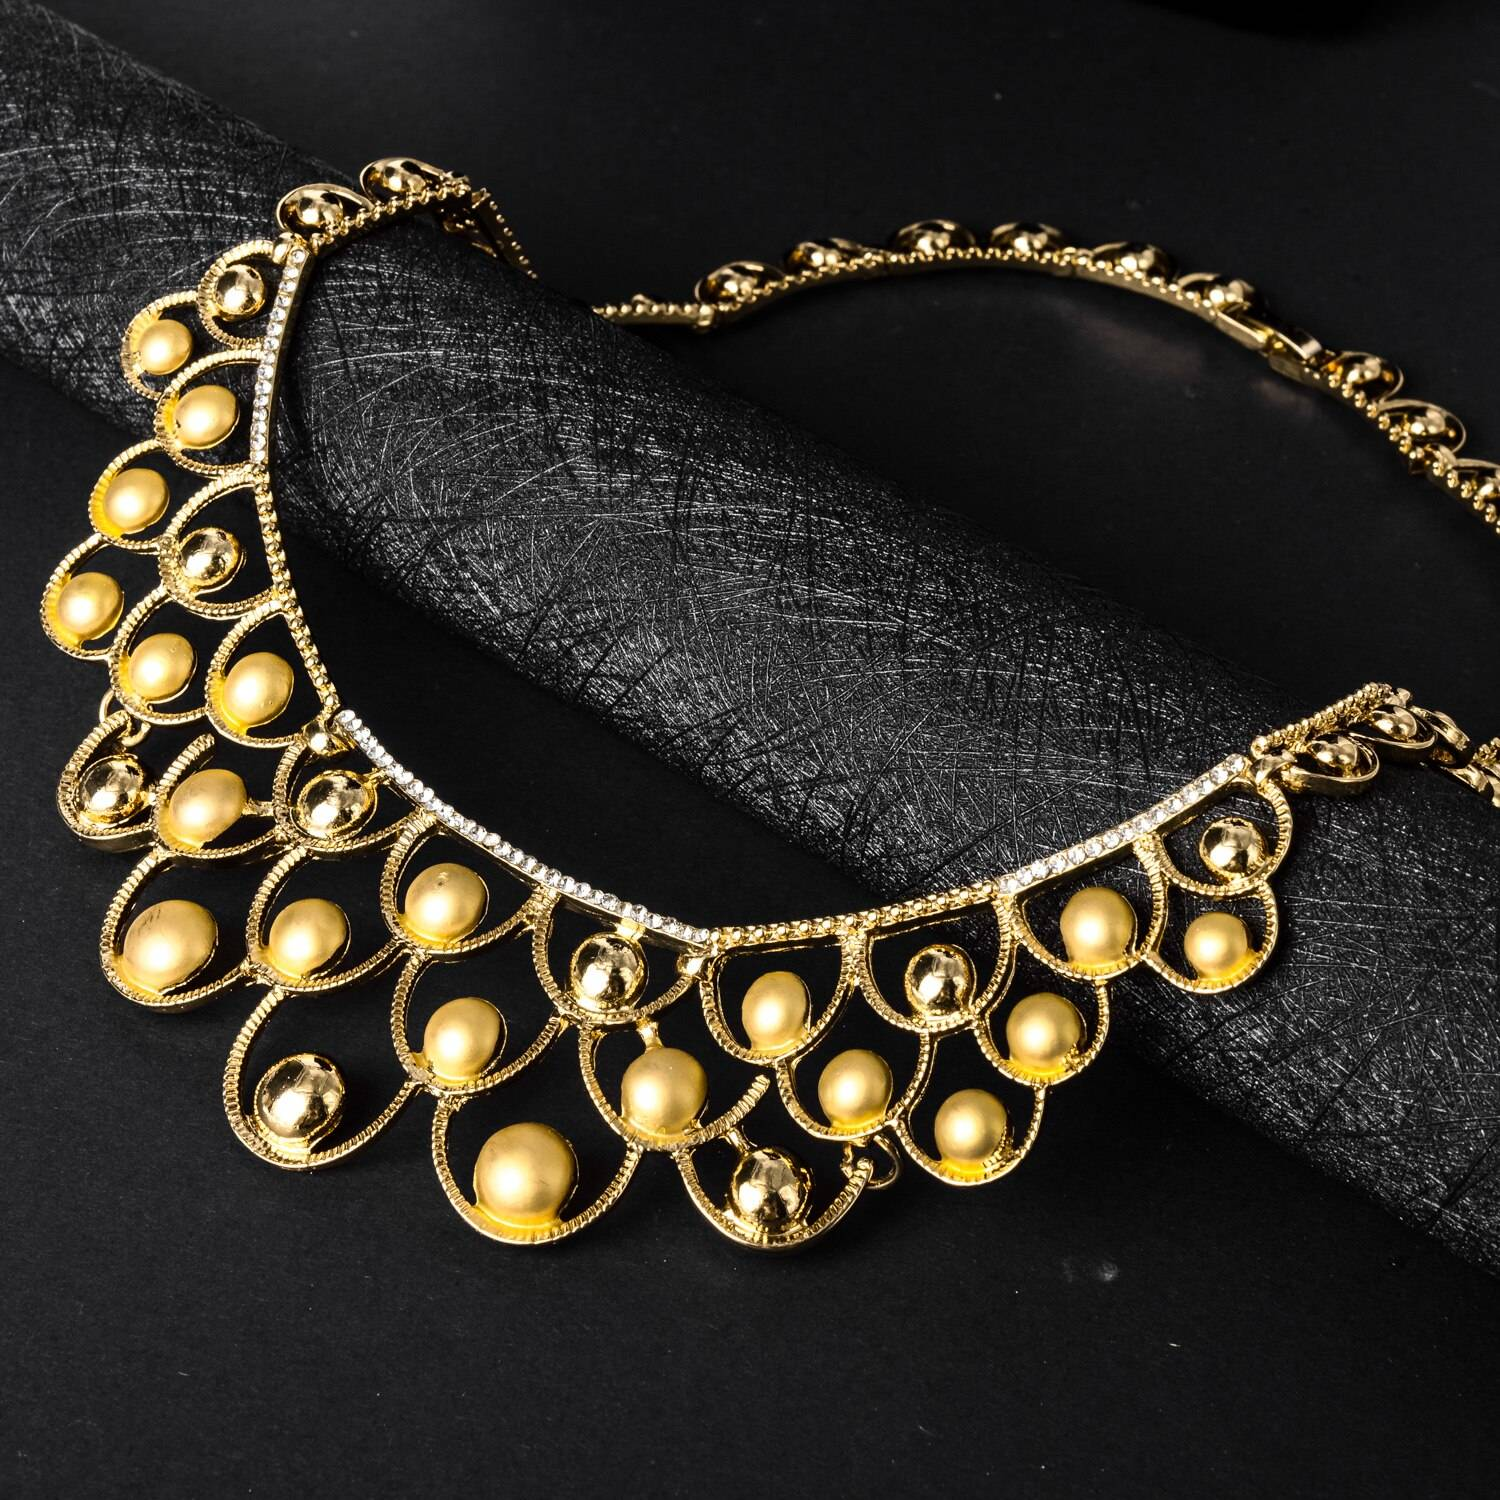 Diana baby Jewelry Sets Gold Planted Bridal Wedding Sets Earrings Necklace Bracelet Ring For Women Engagement Daily Wear Party Wedding Jewellery Set 8d255f28538fbae46aeae7: Jewelry Sets